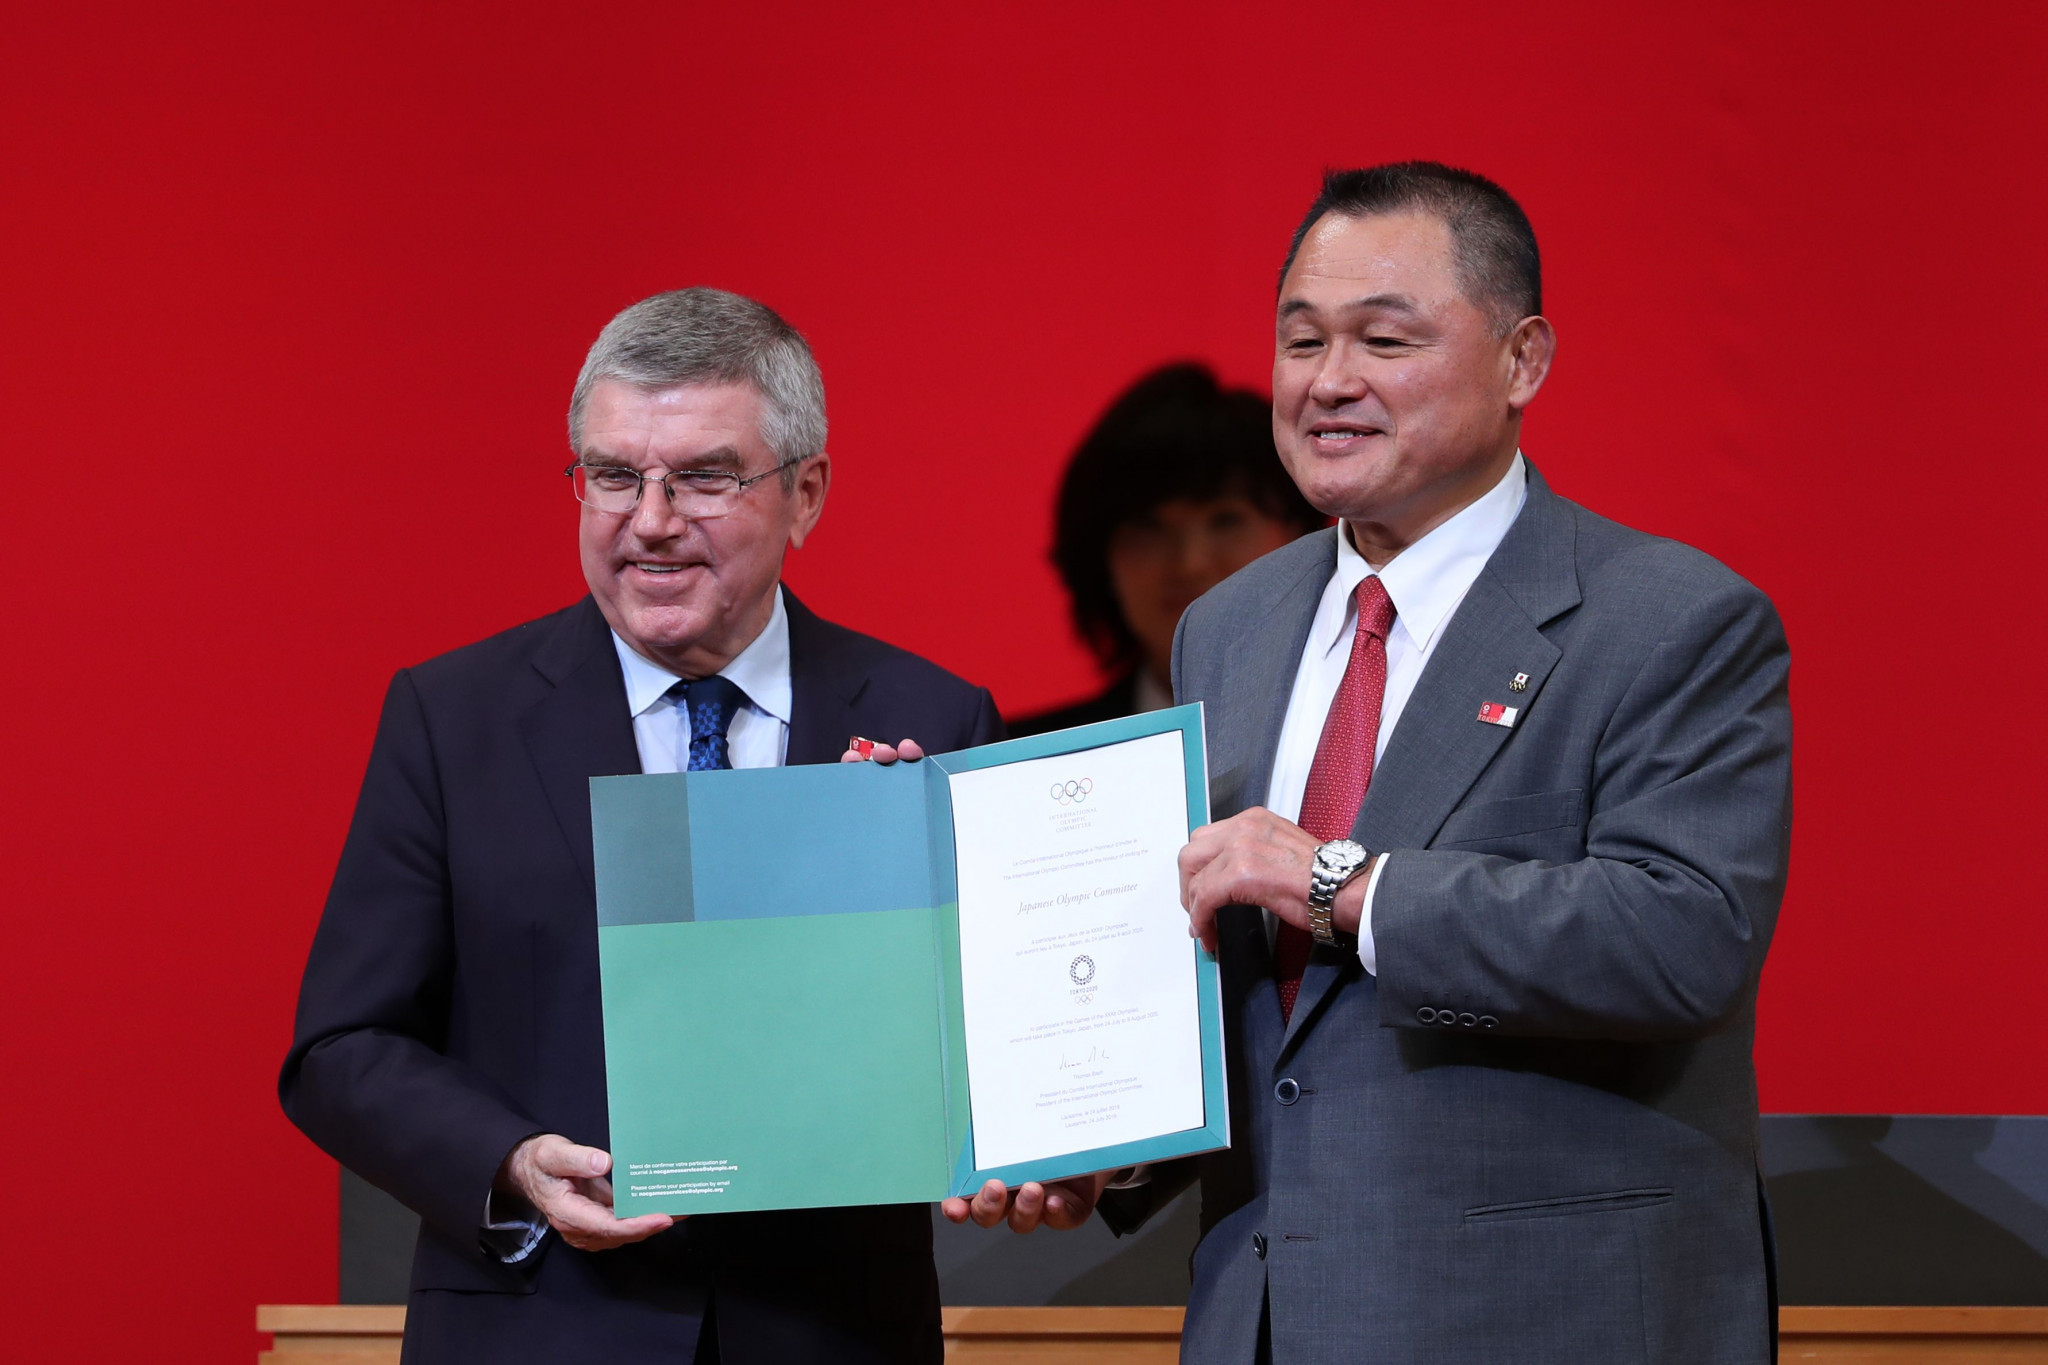 IOC and JOC Presidents discuss methods to stop abuse in Japanese sport